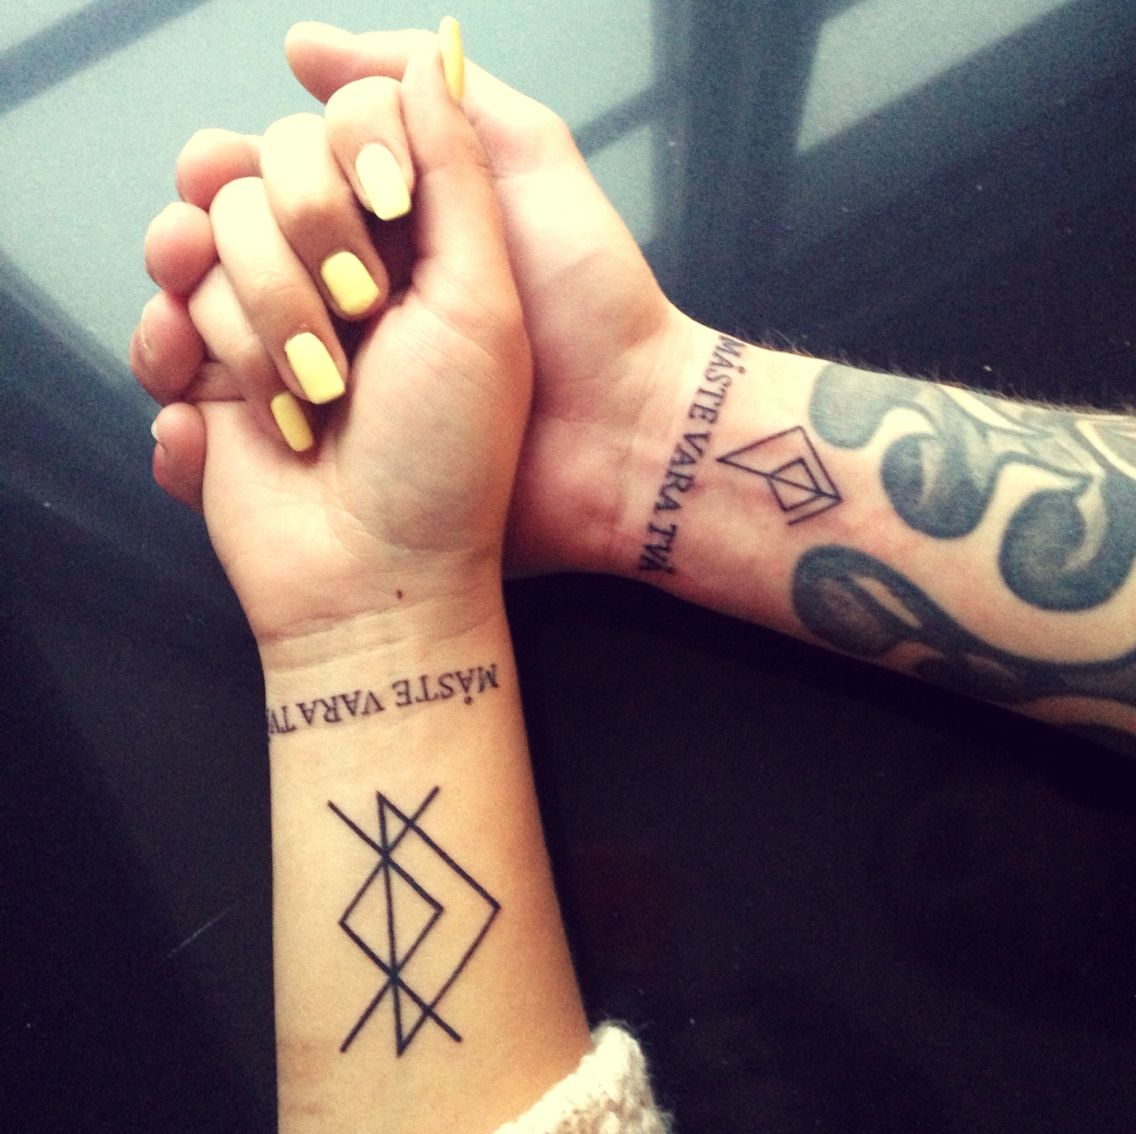 Lovetattoo tattoo love coupletattoo rune tecken lars lovetattoo tattoo love coupletattoo rune tecken lars winnerbck swedish buycottarizona Choice Image